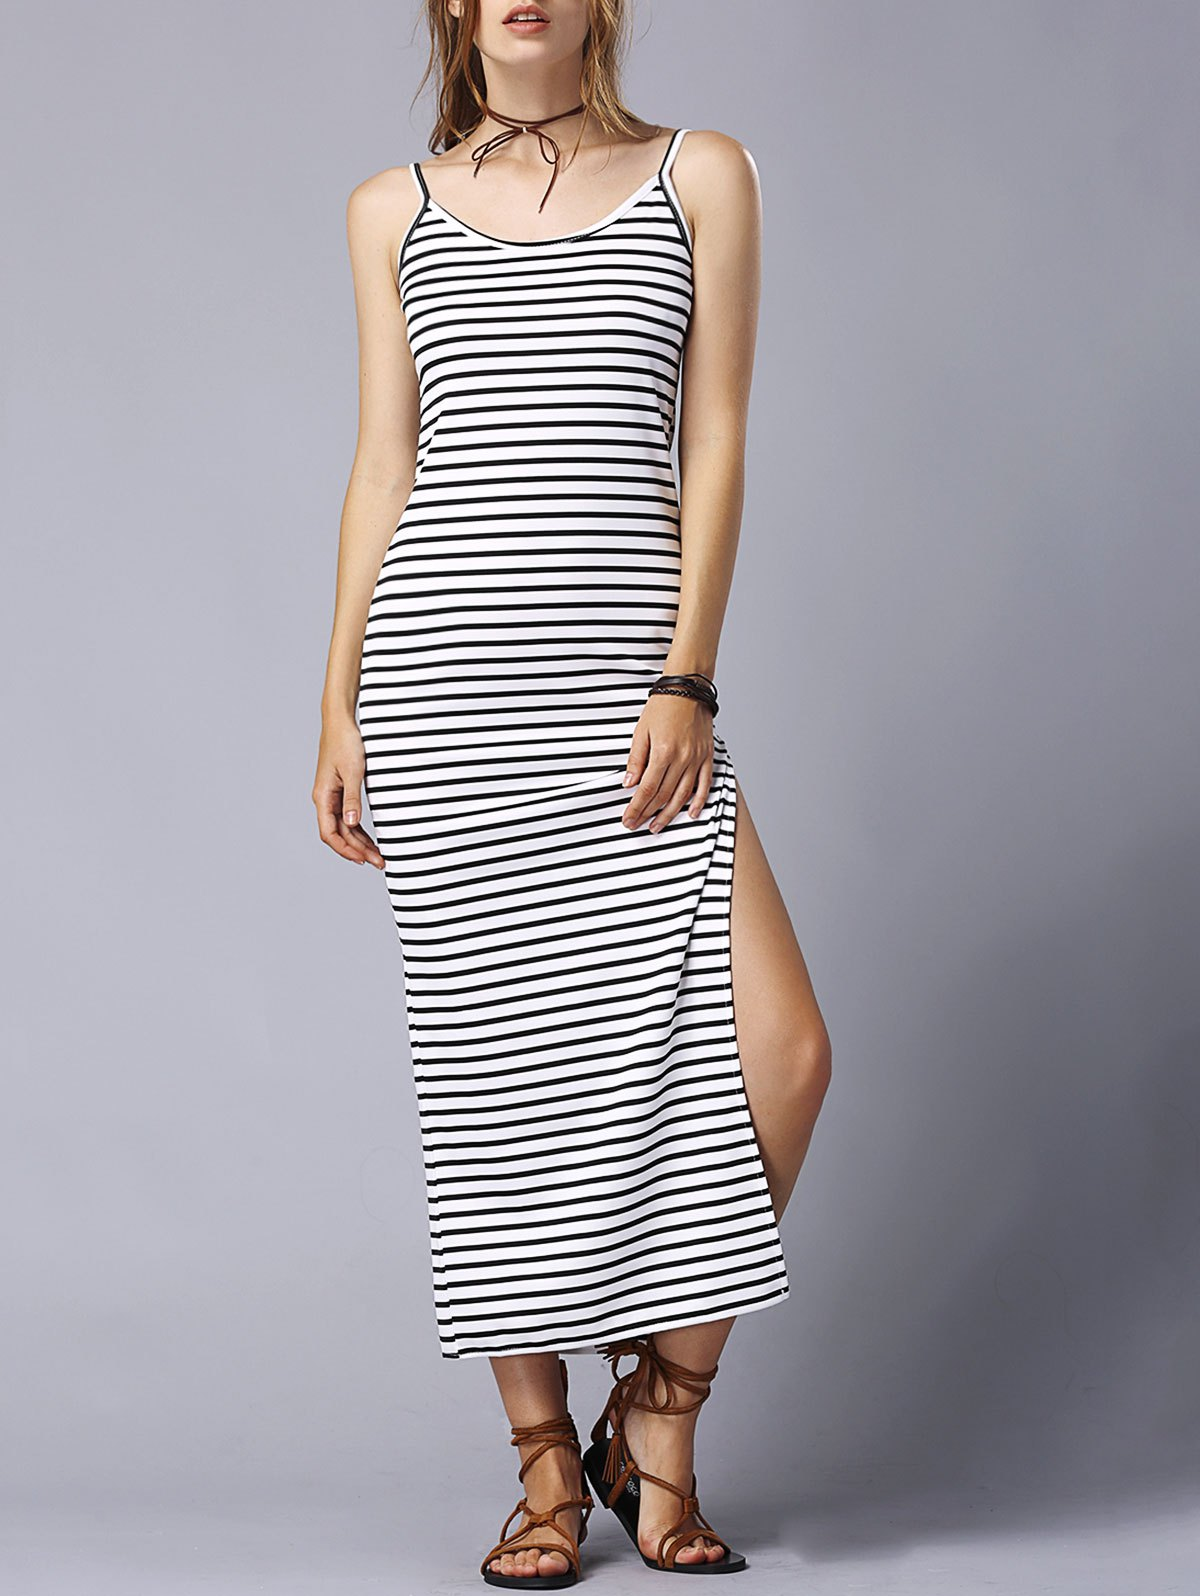 Striped High Slit Spaghetti Straps Sleeveless Dress